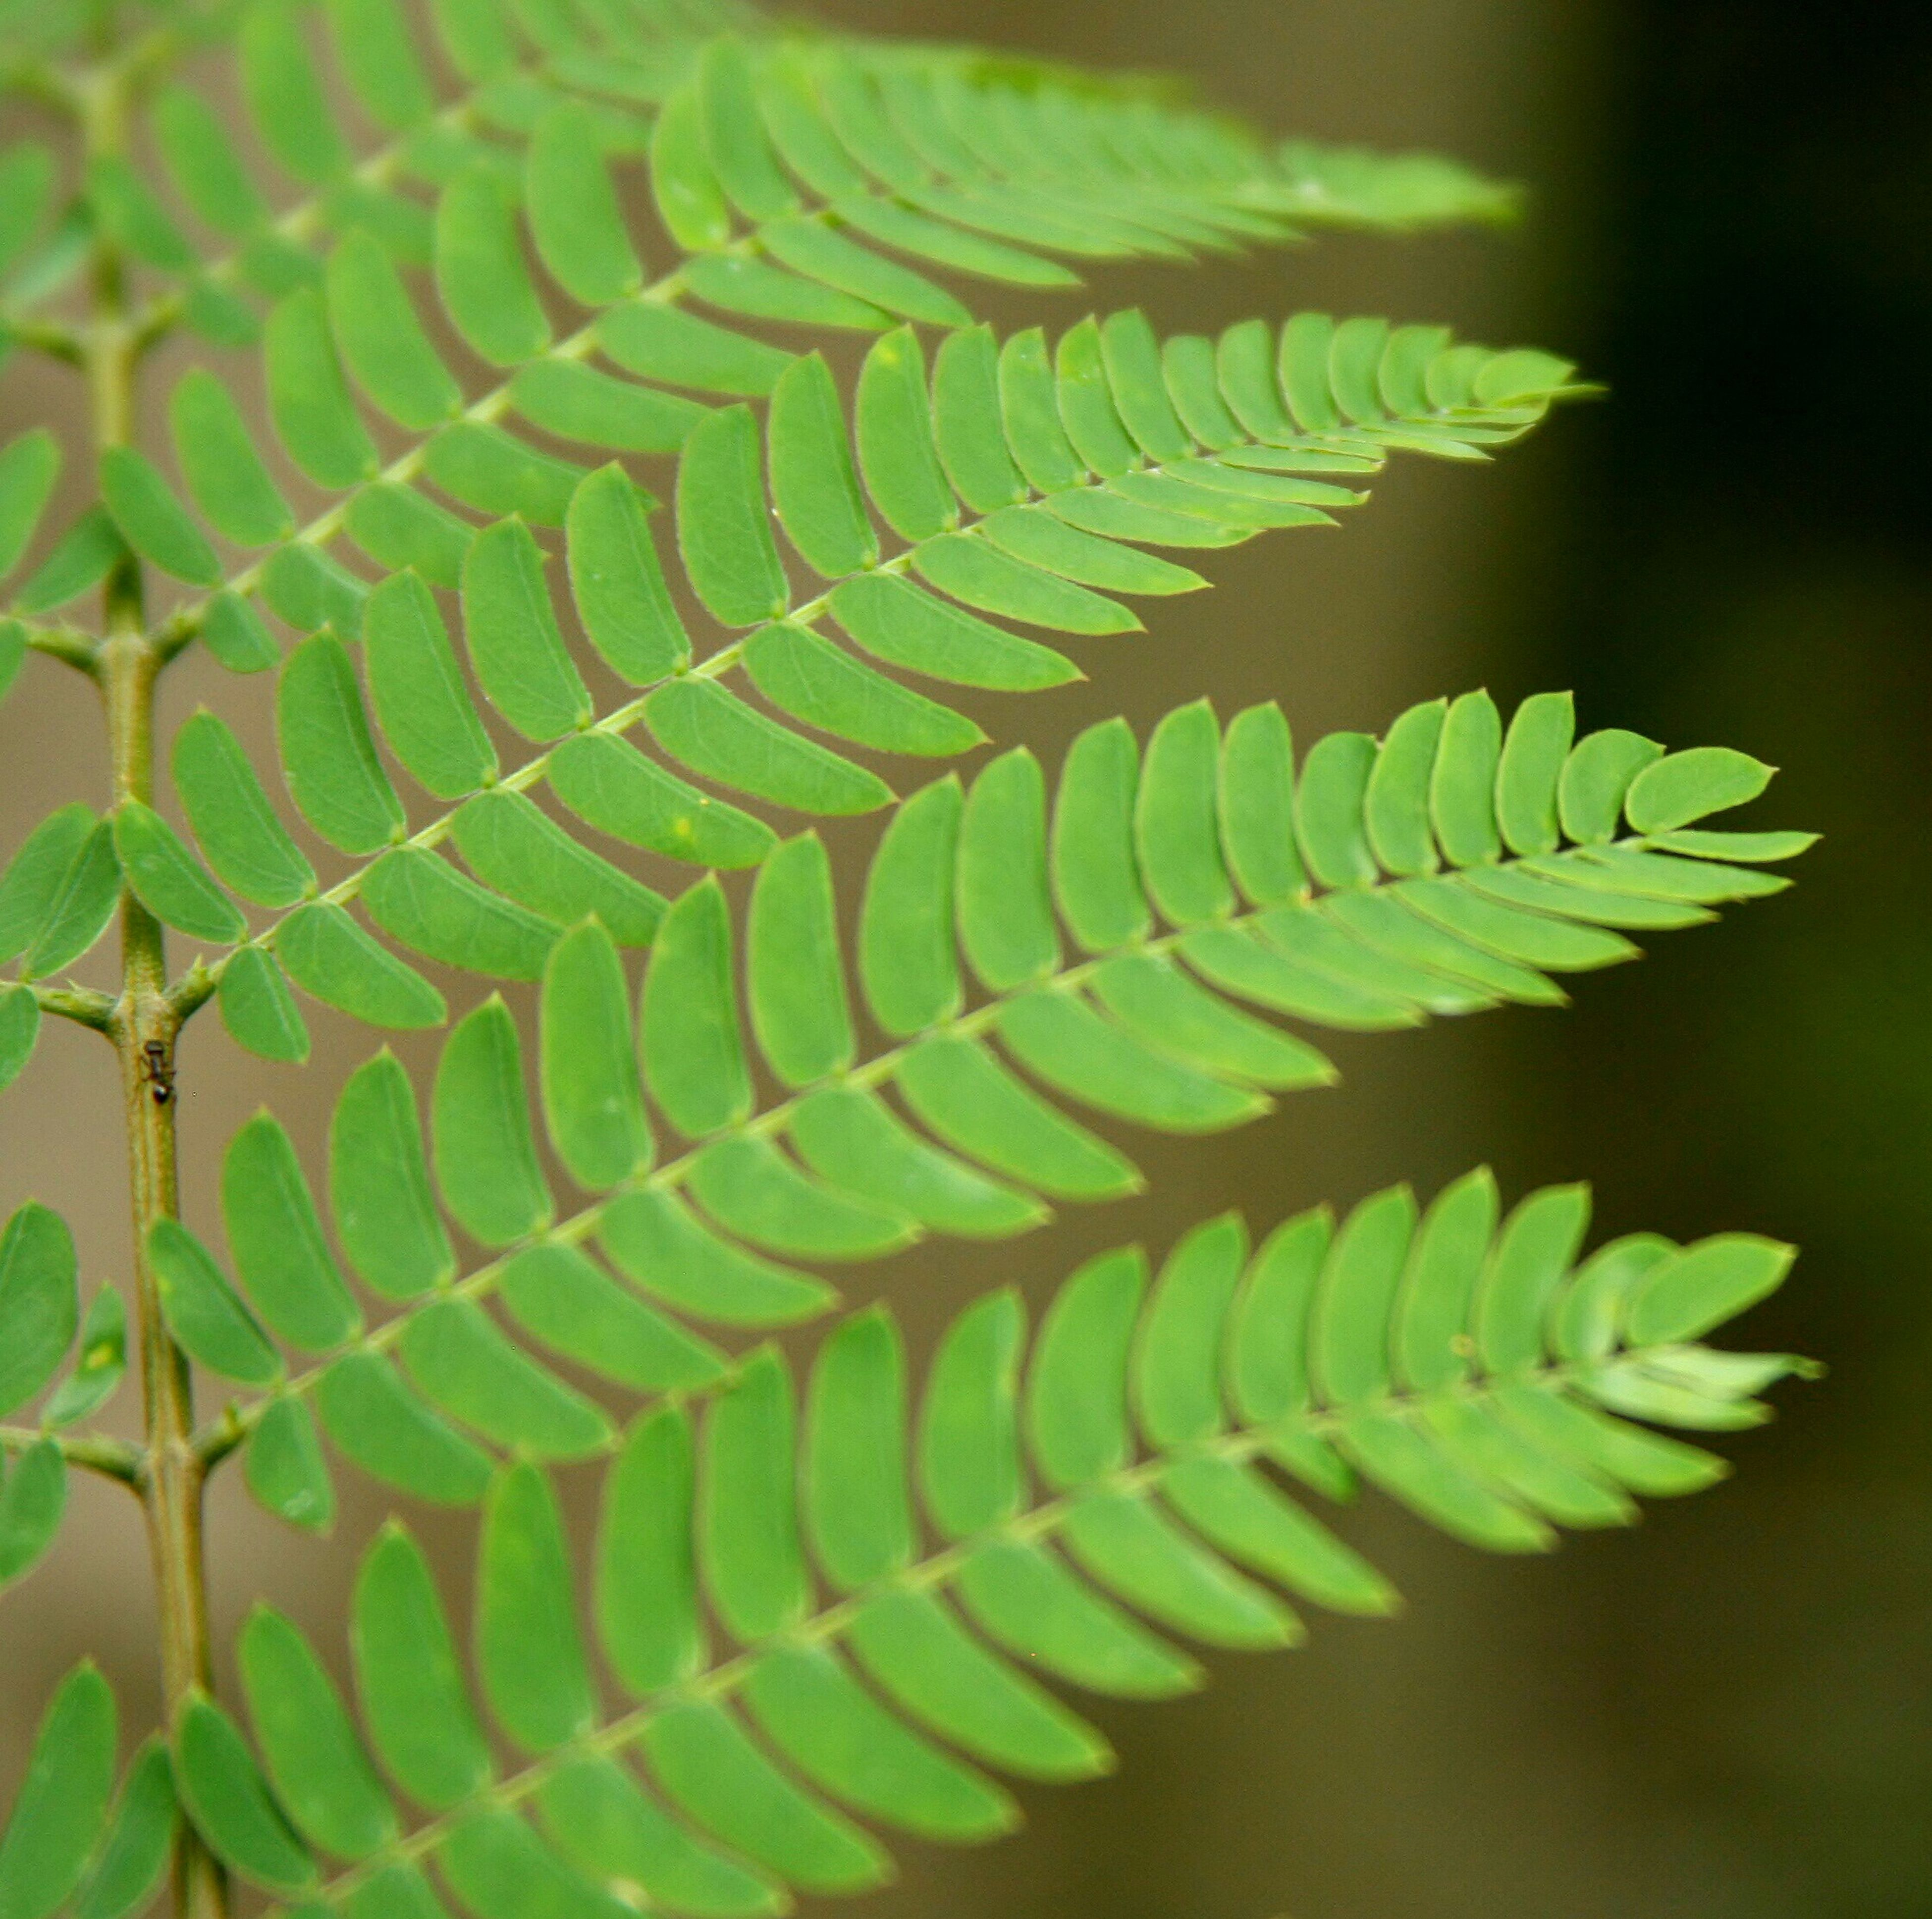 green color, leaf, growth, close-up, fern, nature, plant, natural pattern, pattern, focus on foreground, leaf vein, beauty in nature, selective focus, outdoors, day, no people, tranquility, green, leaves, sharp